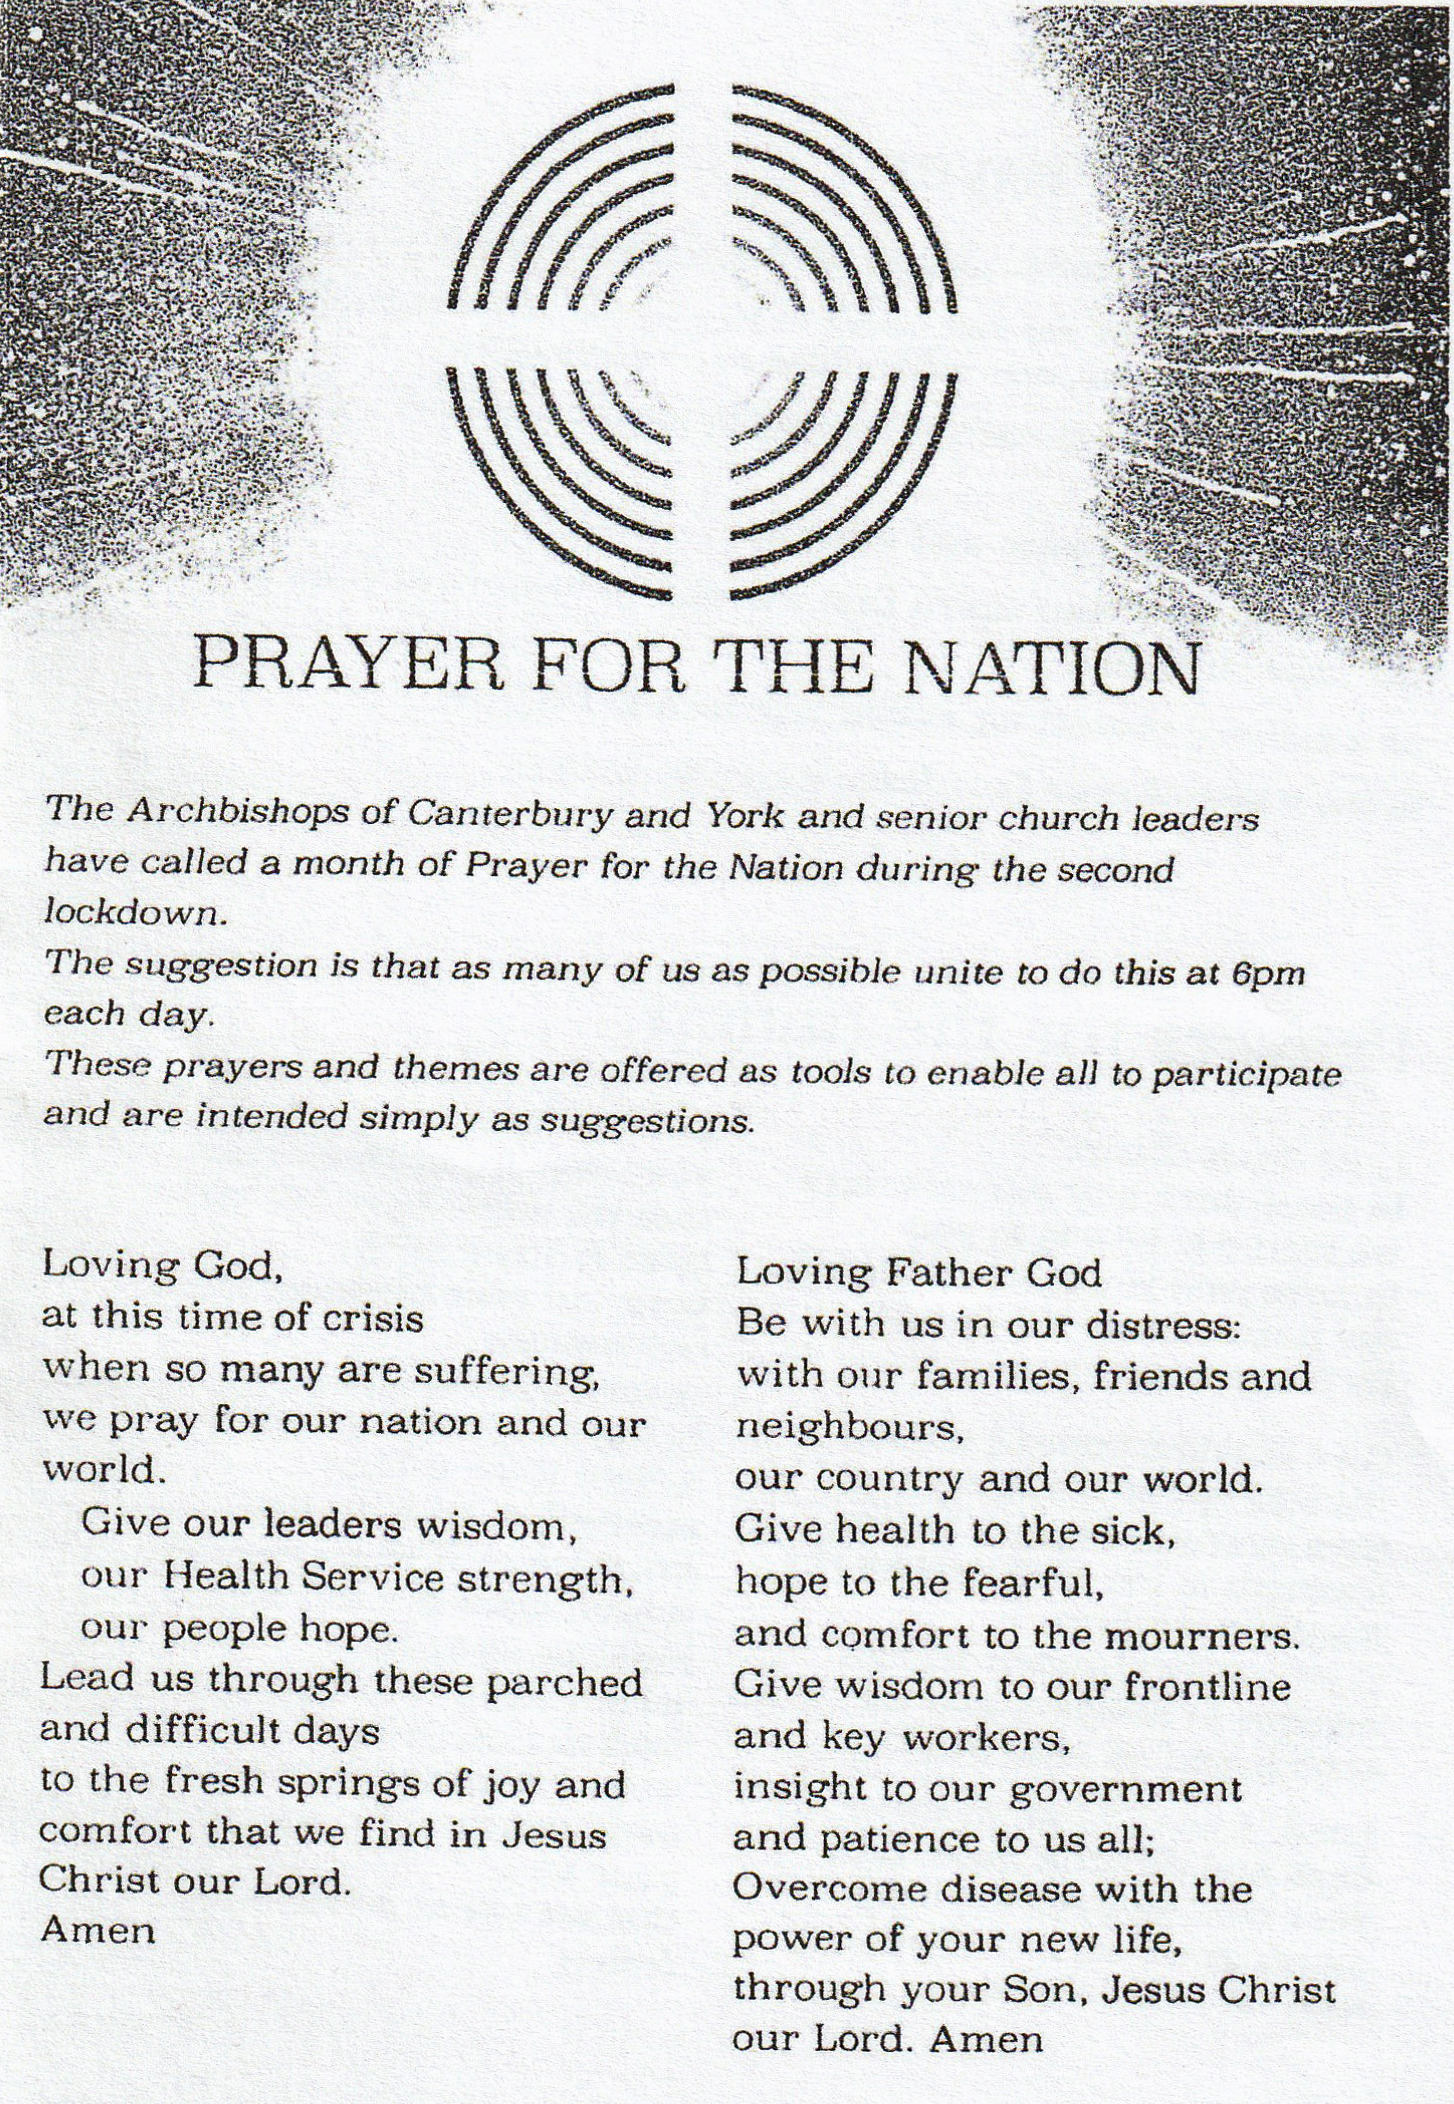 161120 Prayer for the Nation p1